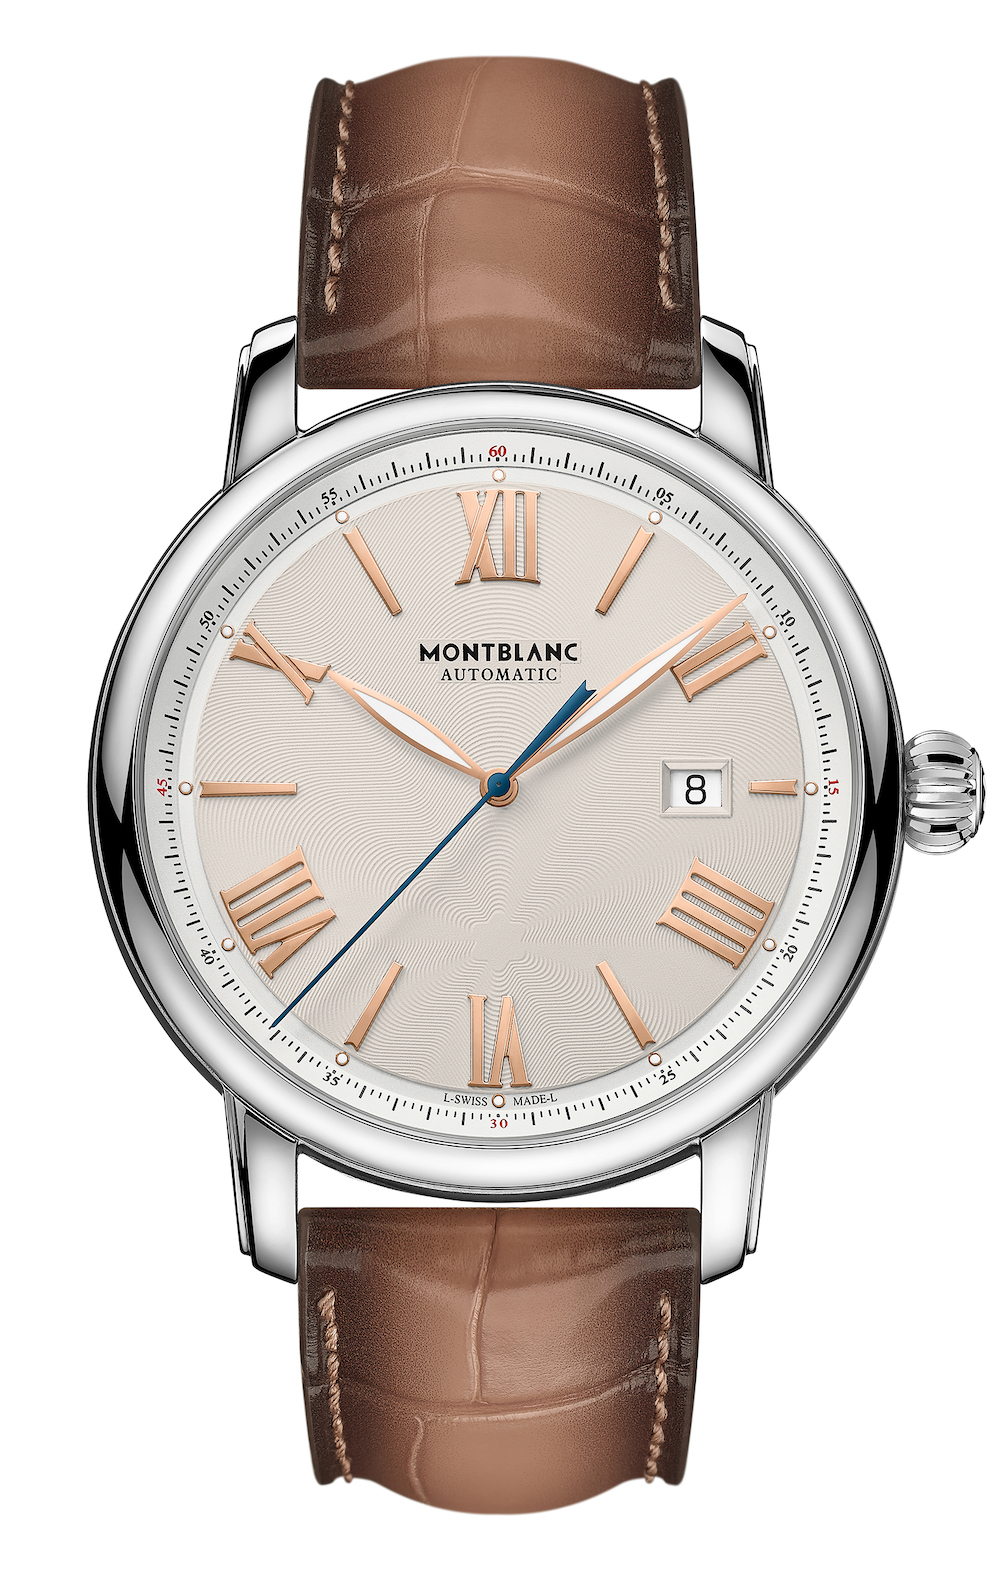 Montblanc Startimer Automatic Chronograph Day and Date watch